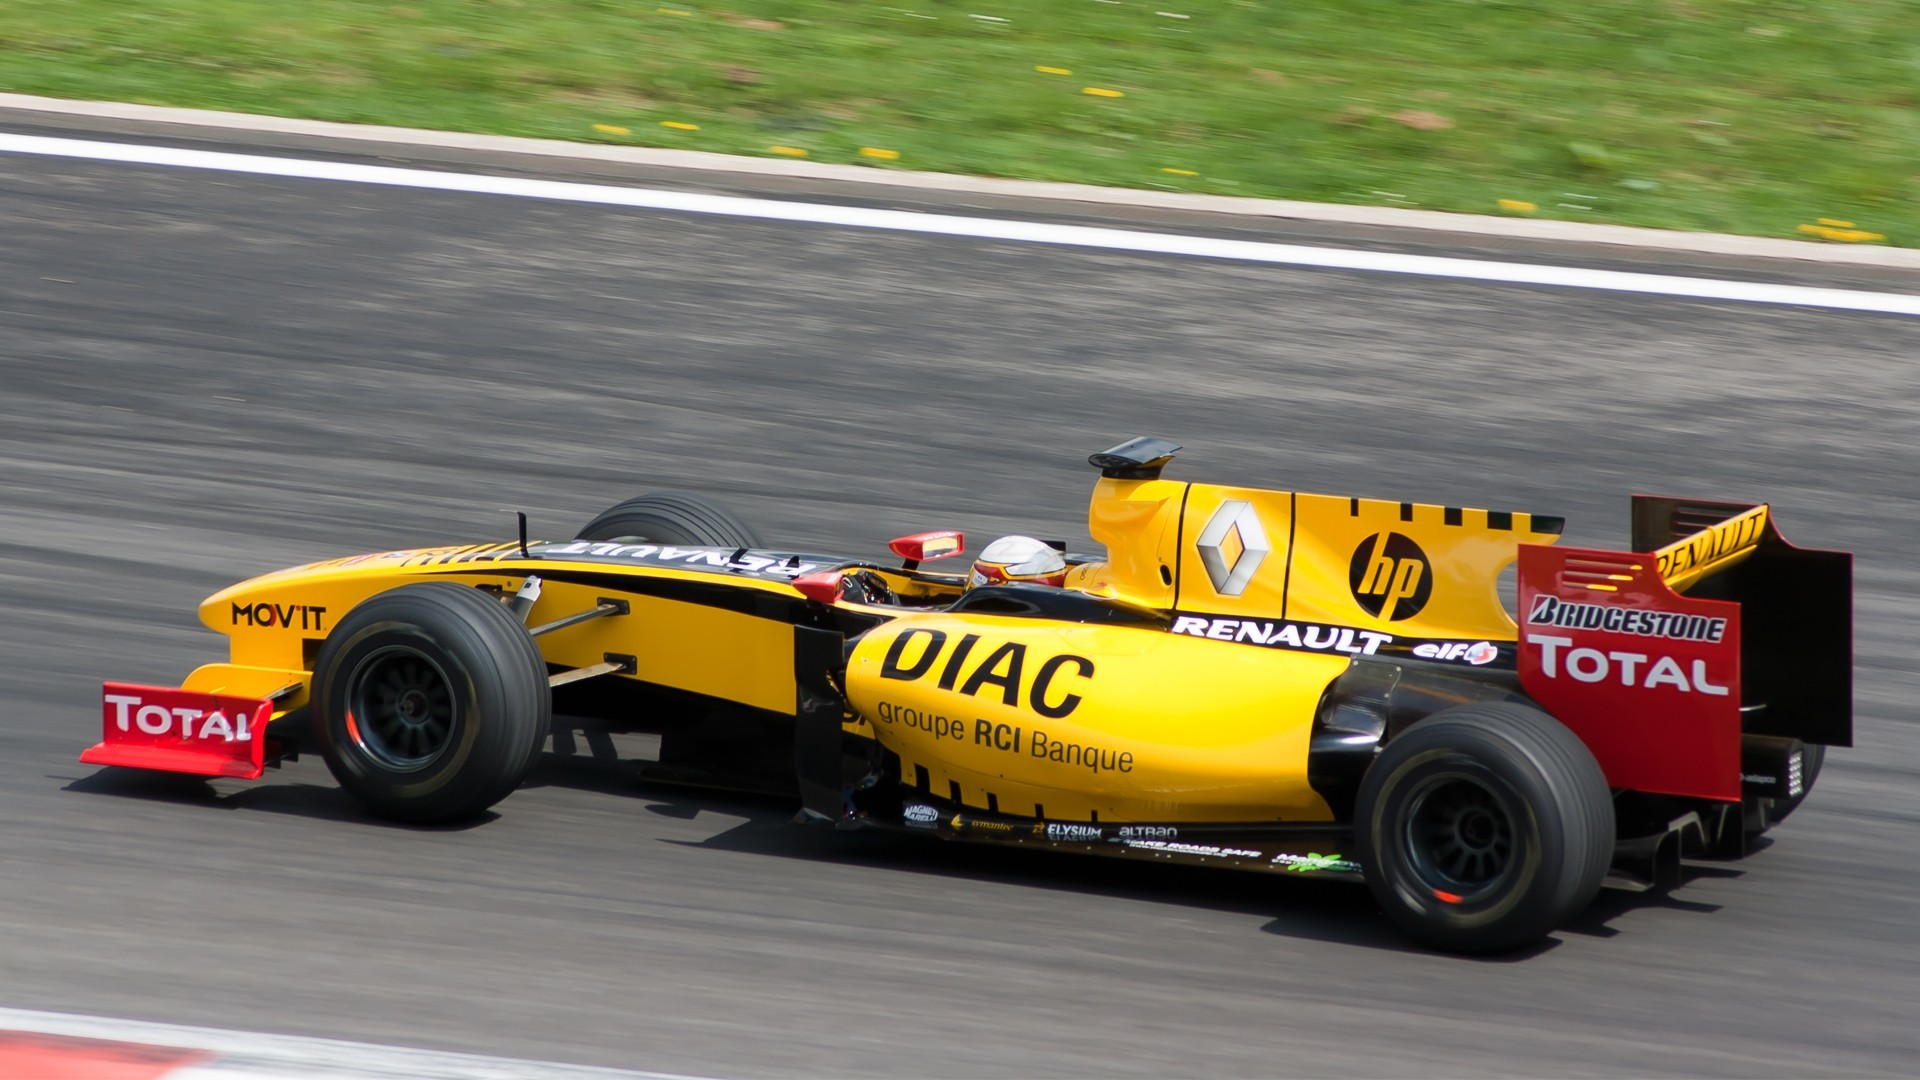 formula one Renault cars HD Wallpaper